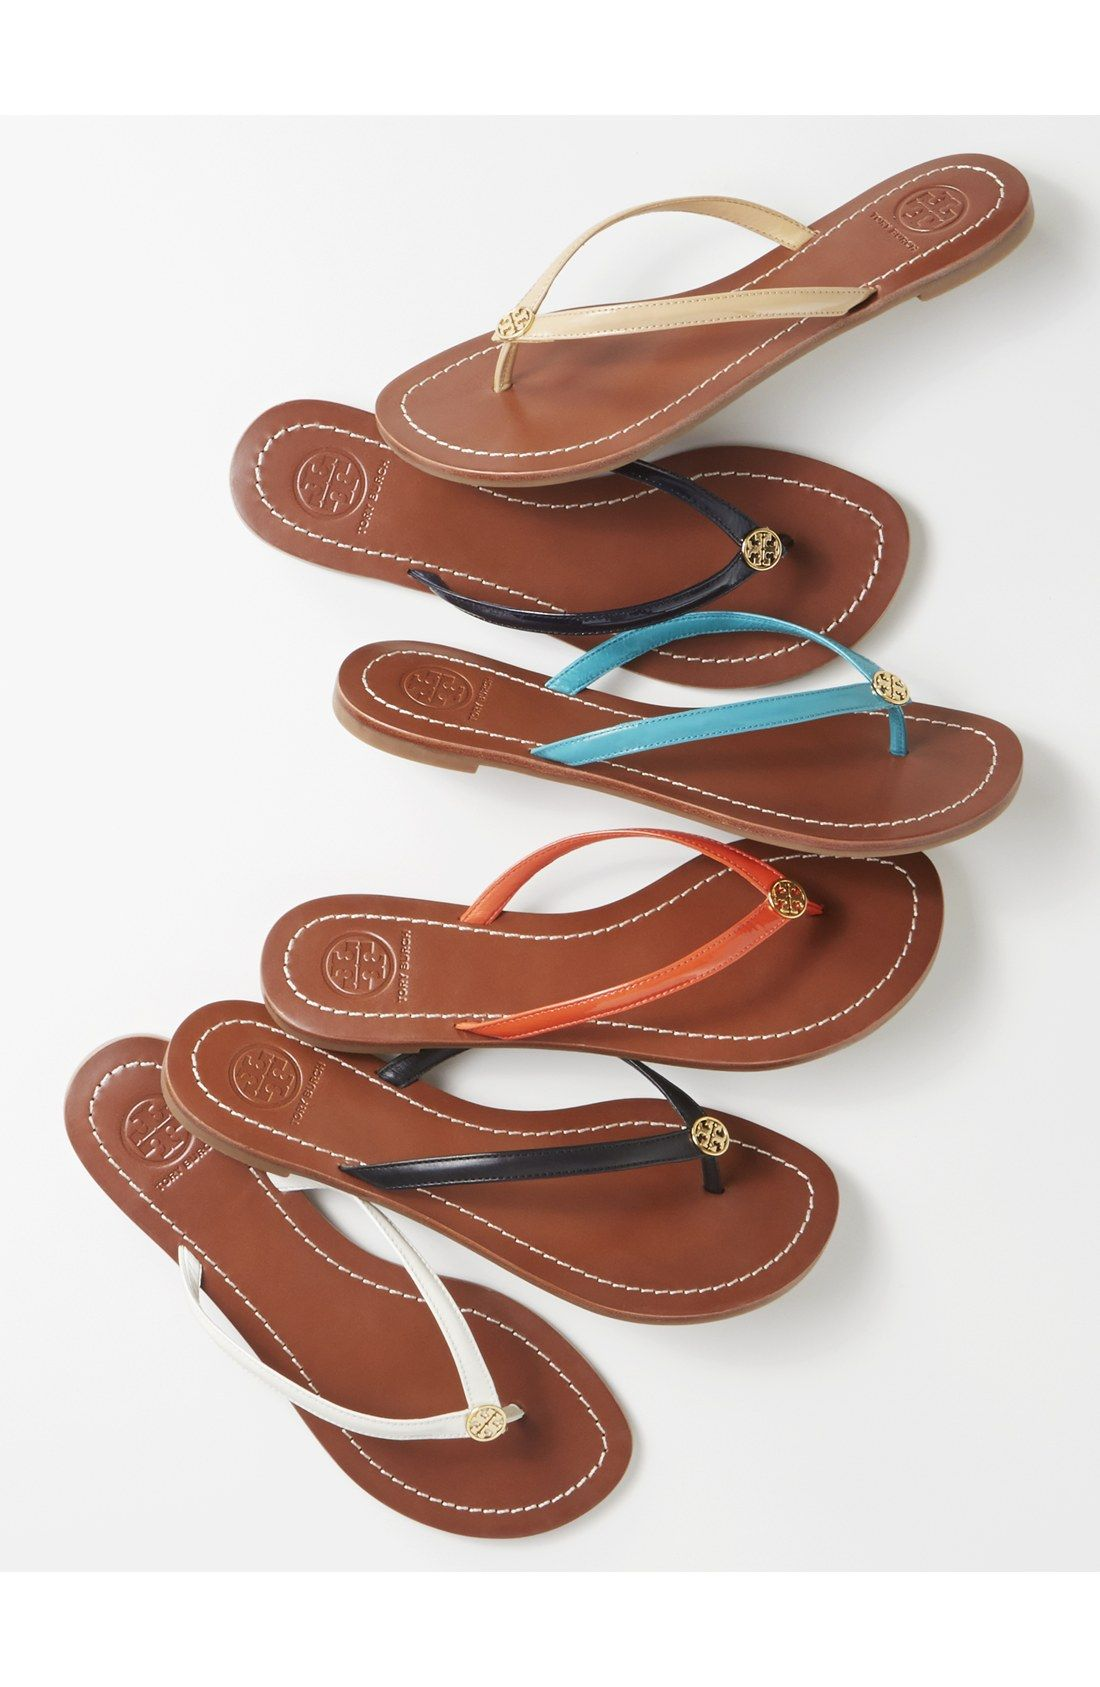 b7858a0697b http   www.newtrendclothing.com category tory-burch